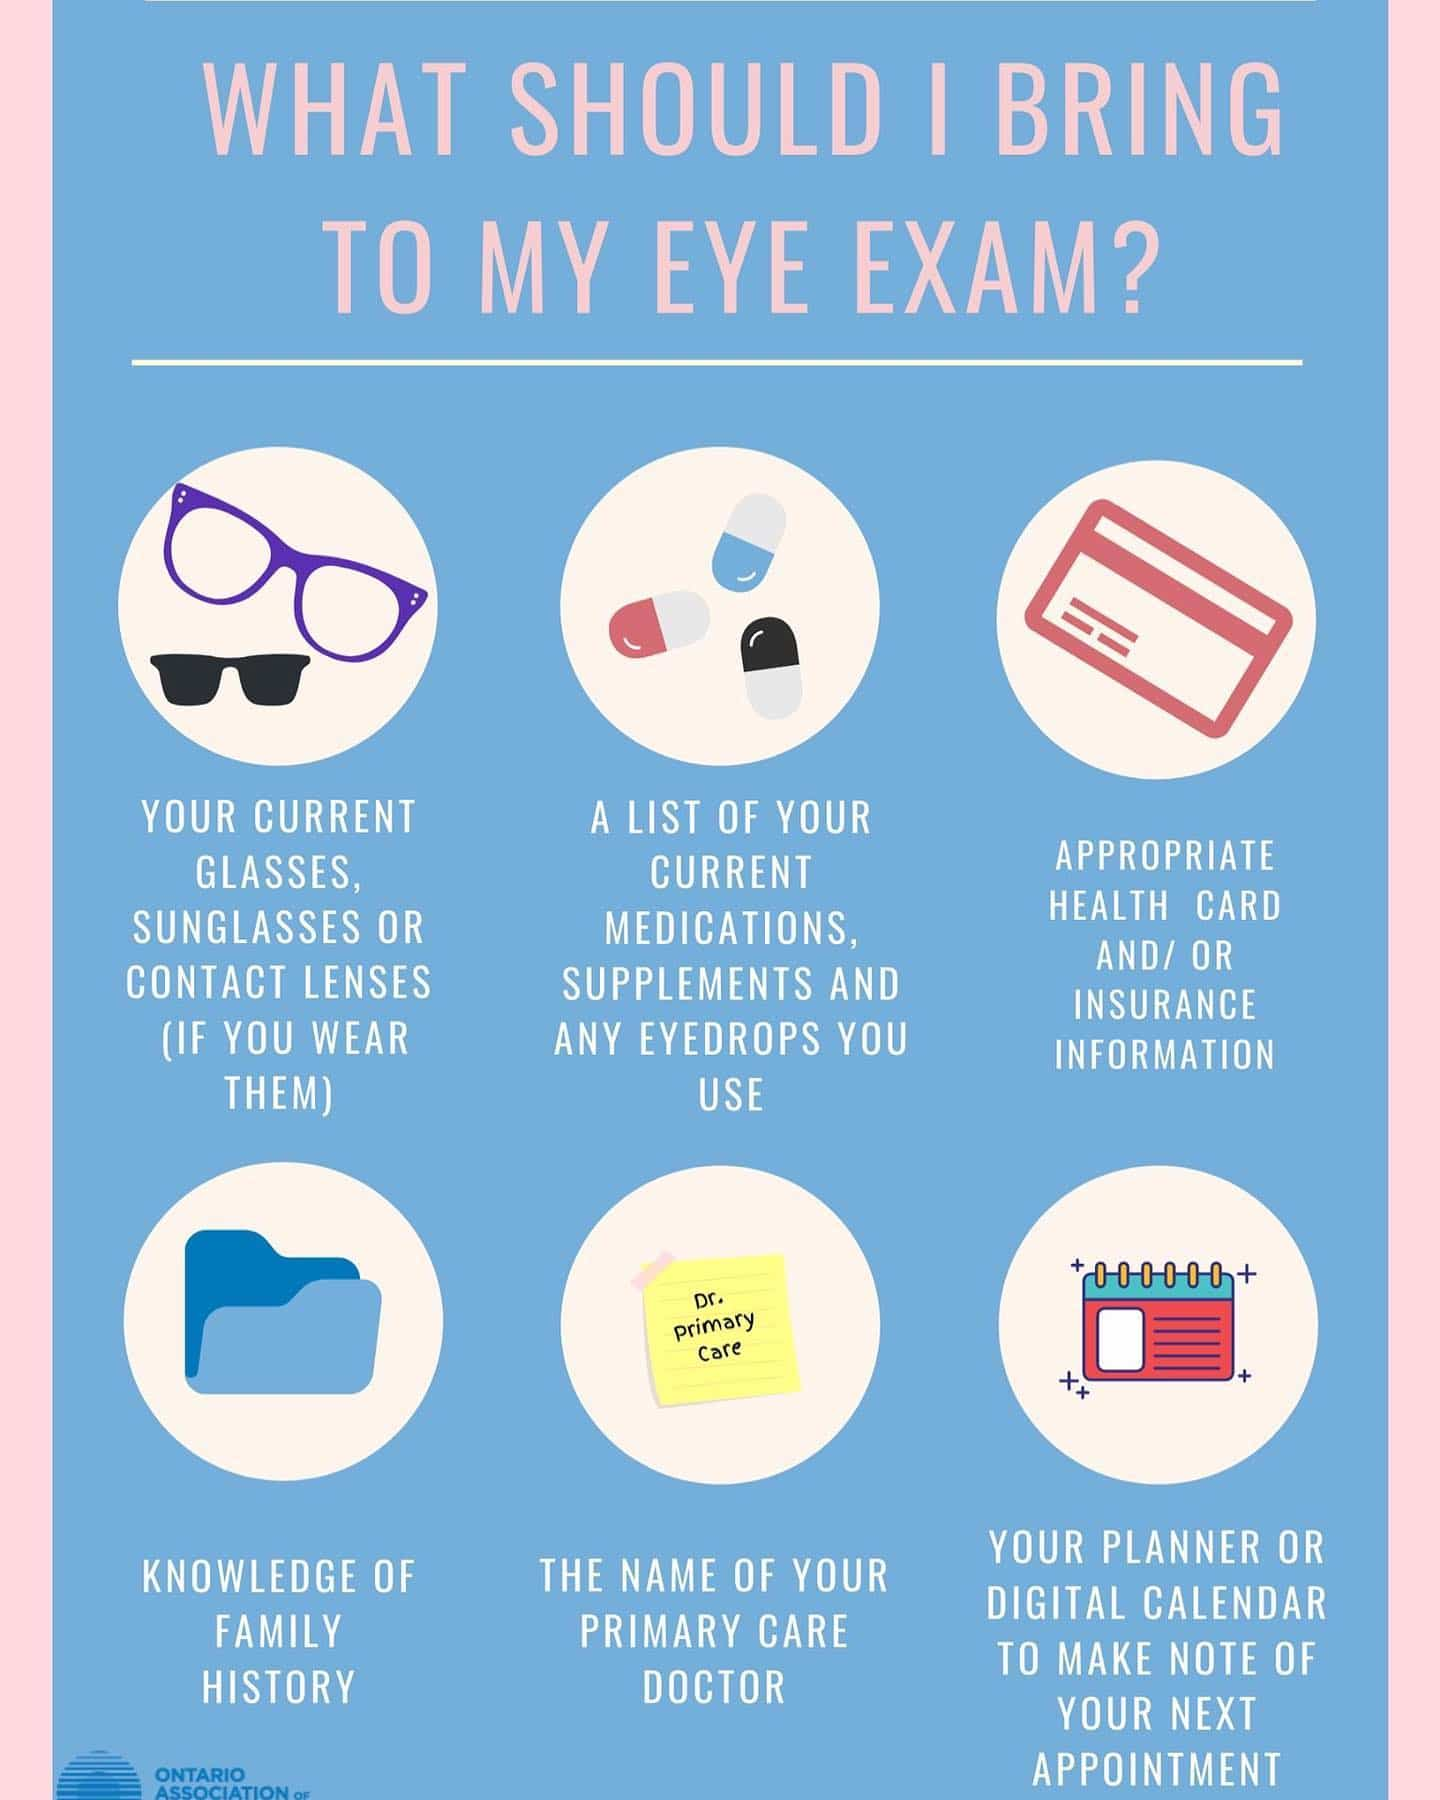 You don't have to study for your eye exam, but it's helpful to be prepared. These helpful hints from @ontariooptometrists are a great way to be organized for your next exam. You're always welcome to ask what to expect during exams and have any questions answered. We're always more than happy to help! Book an exam and don't miss out on our Winter Sale! #eyepractice #rockwoodoptometry #guelphoptometry #rockwoodoptometrist #guelphoptometrist